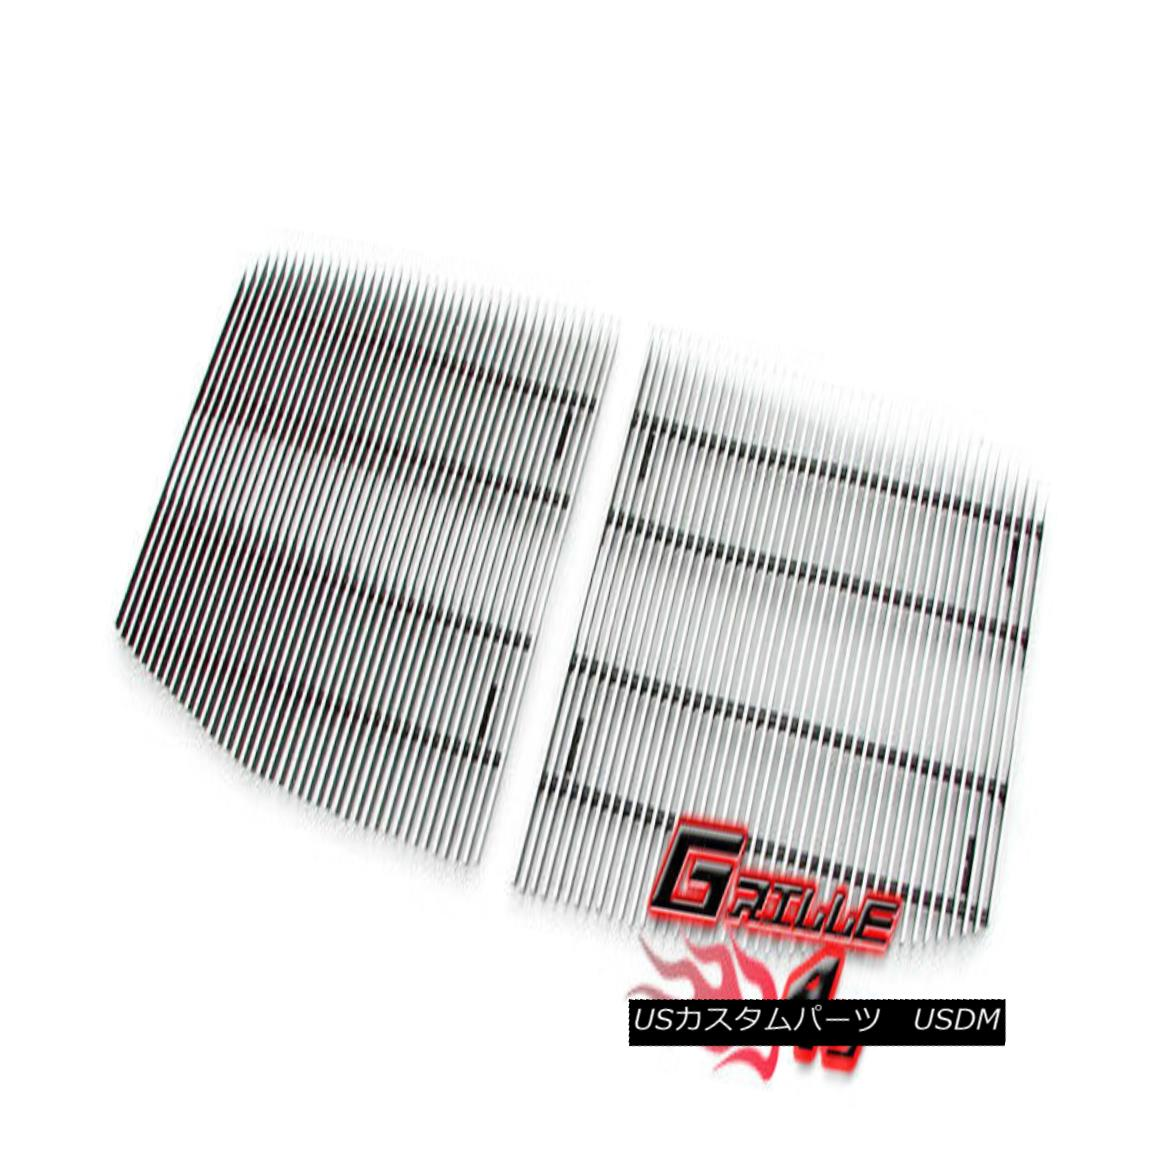 グリル Customized For 04-06 Dodge Durango Billet Premium Grille Insert 04-06 Dodge Durango Billetプレミアムグリルインサート用にカスタマイズ